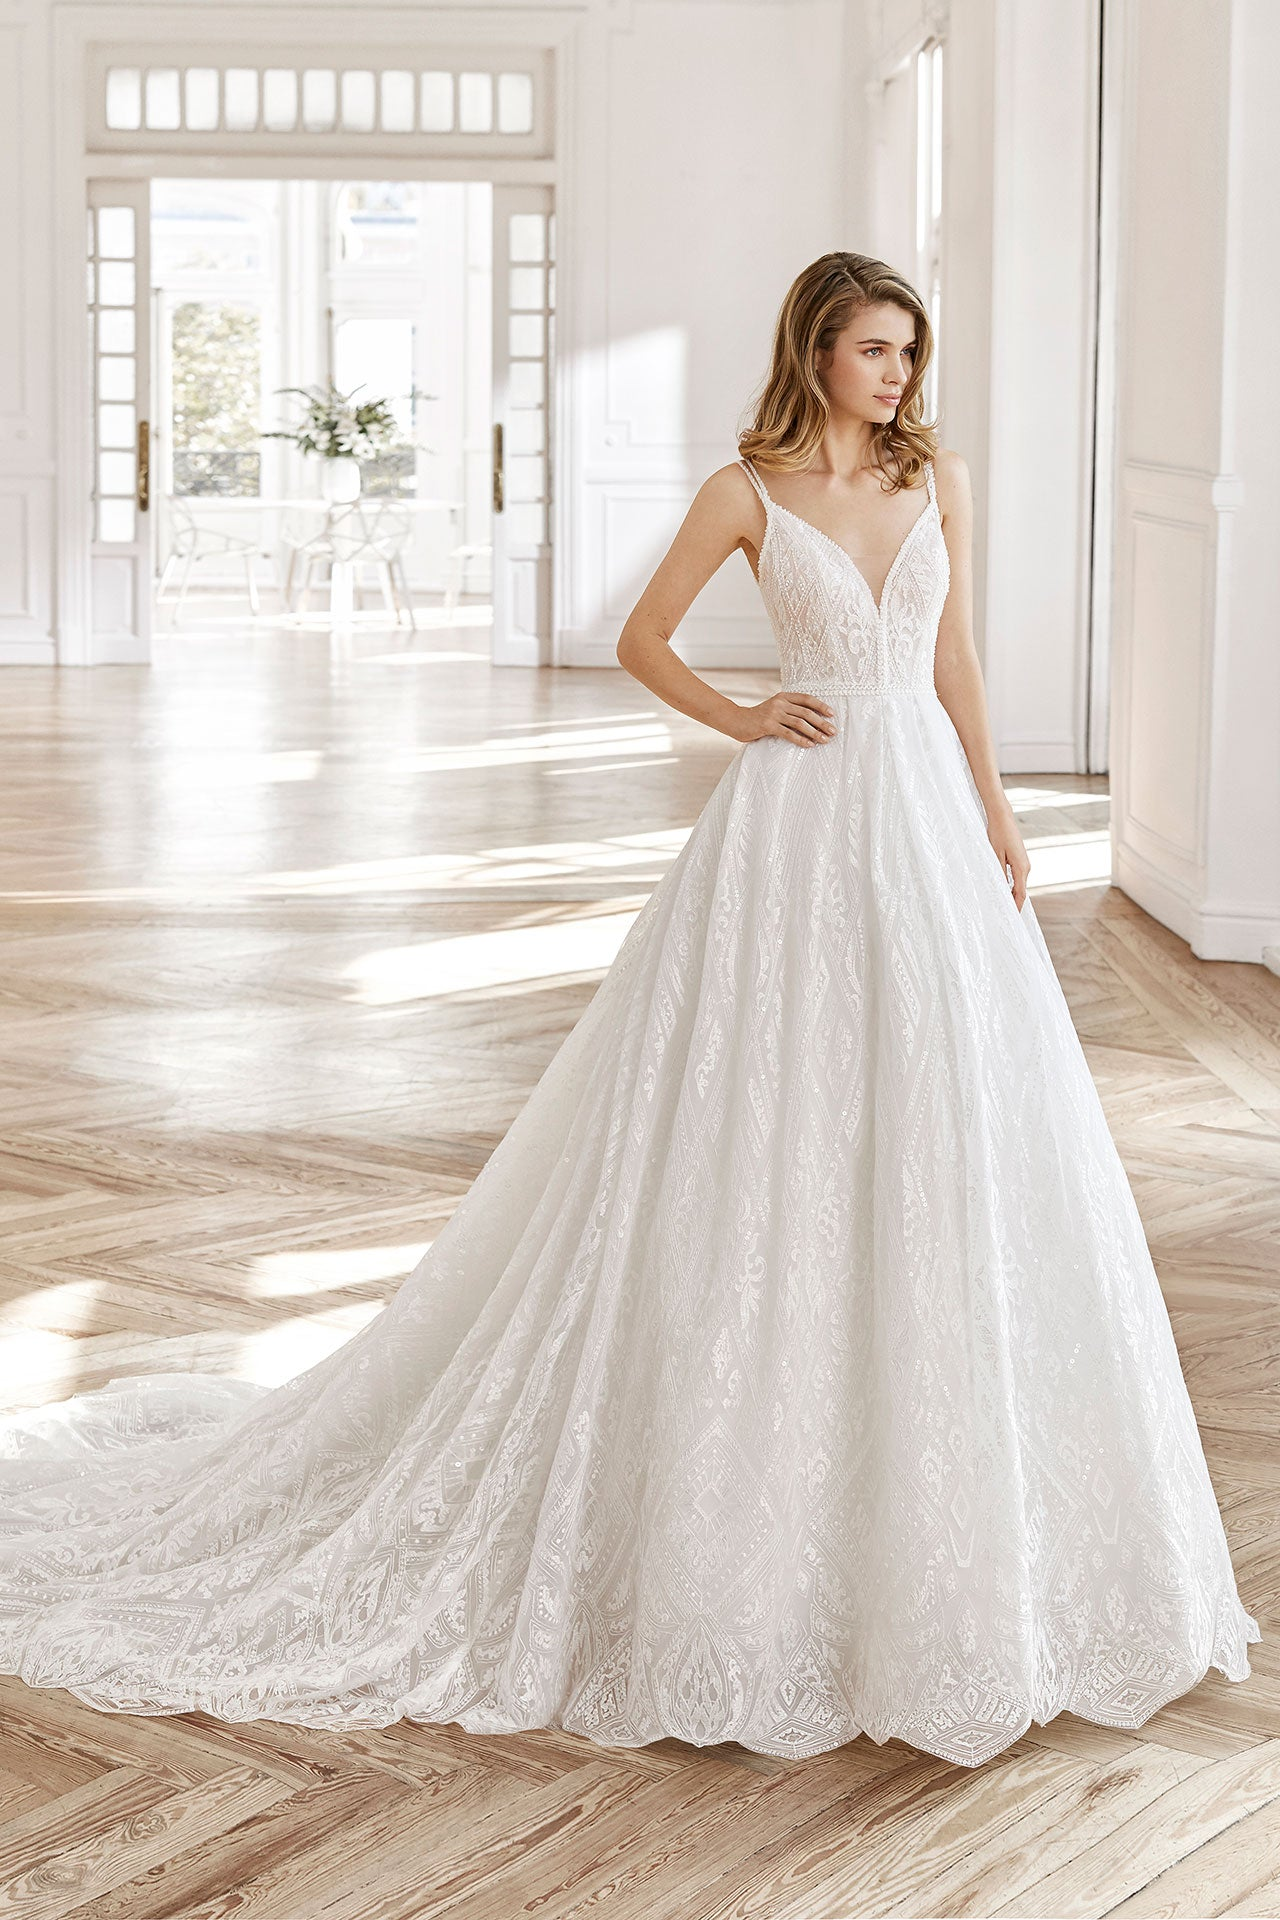 Niord - Coming Soon, Gown, Aire Barcelona - Eternal Bridal